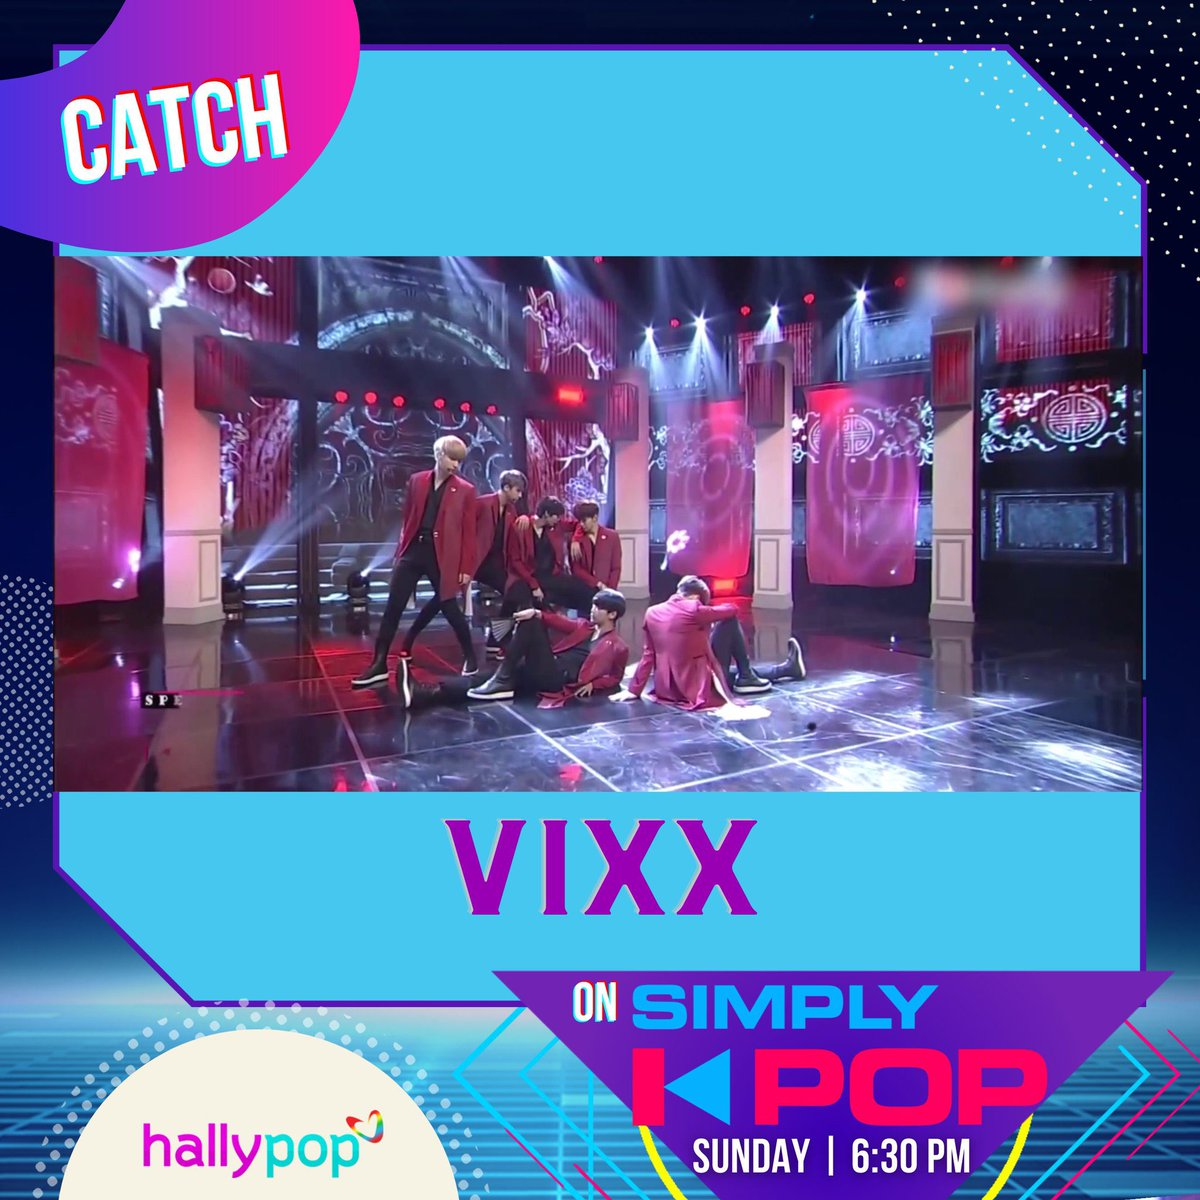 Simply amazing voices and visuals! Watch VIXX tomorrow on #SimplyKPop!